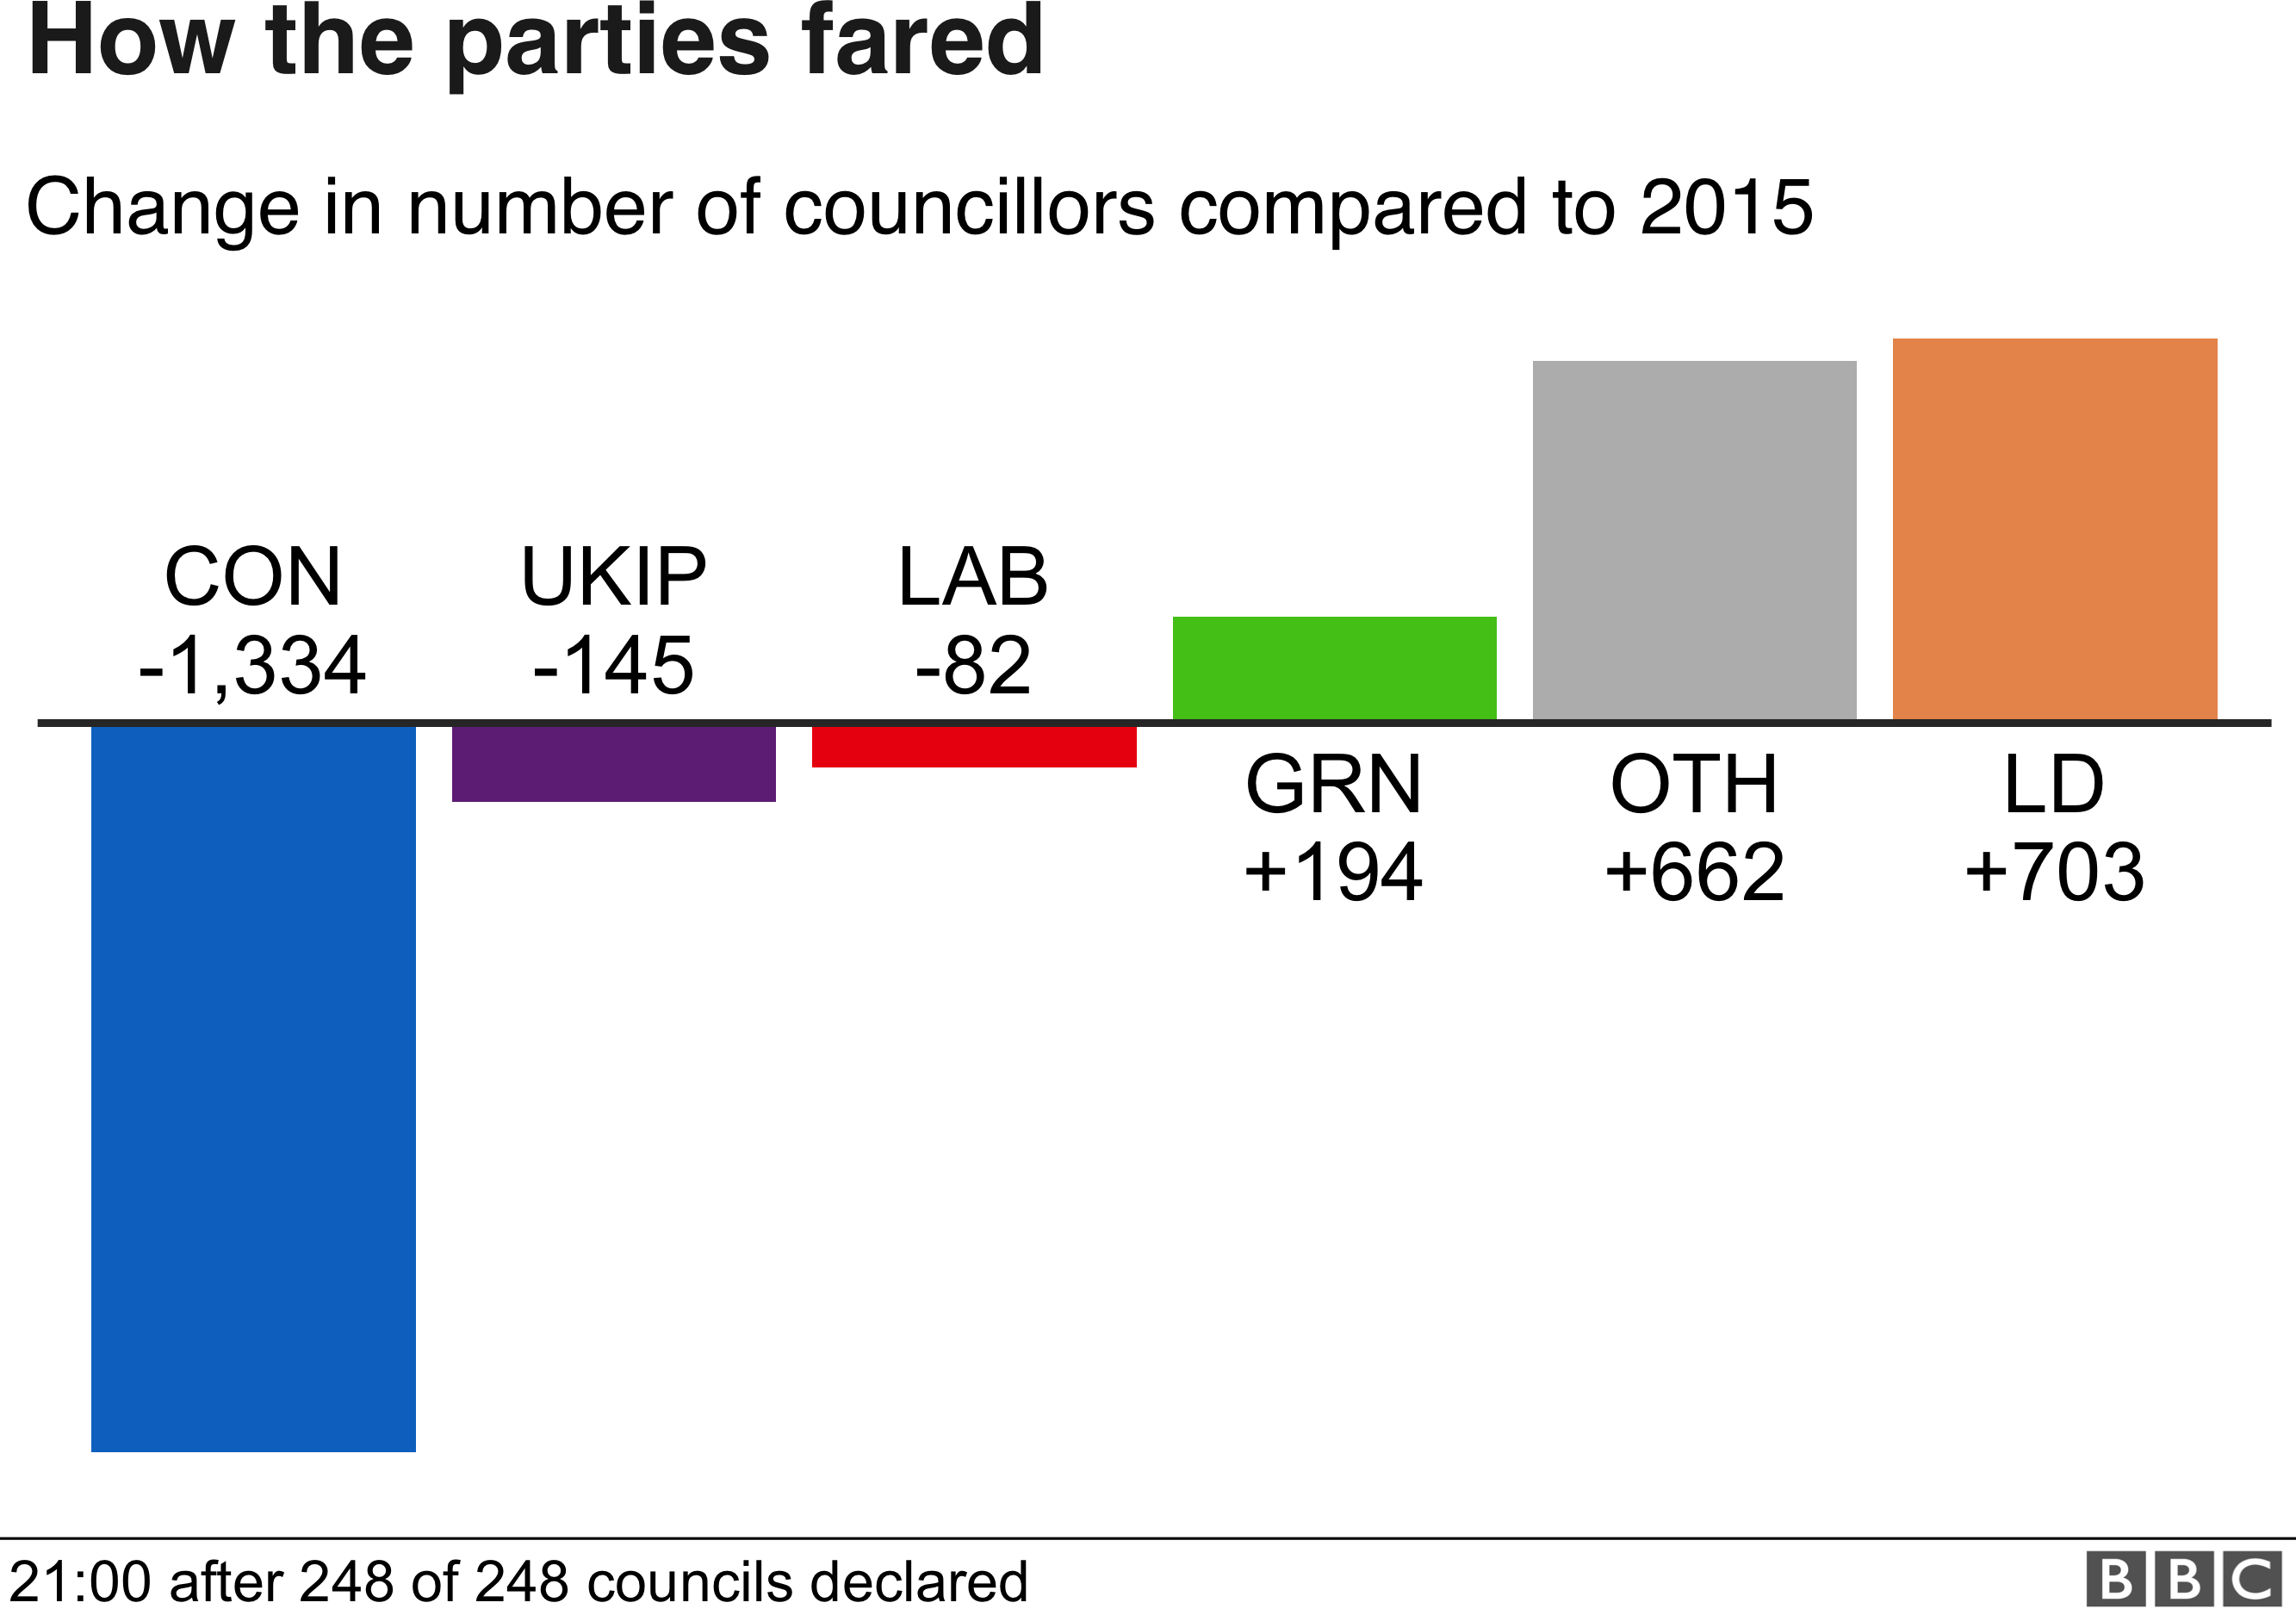 Final change chart: Tories lost over 1,300 seats and Lib Dems gained 700